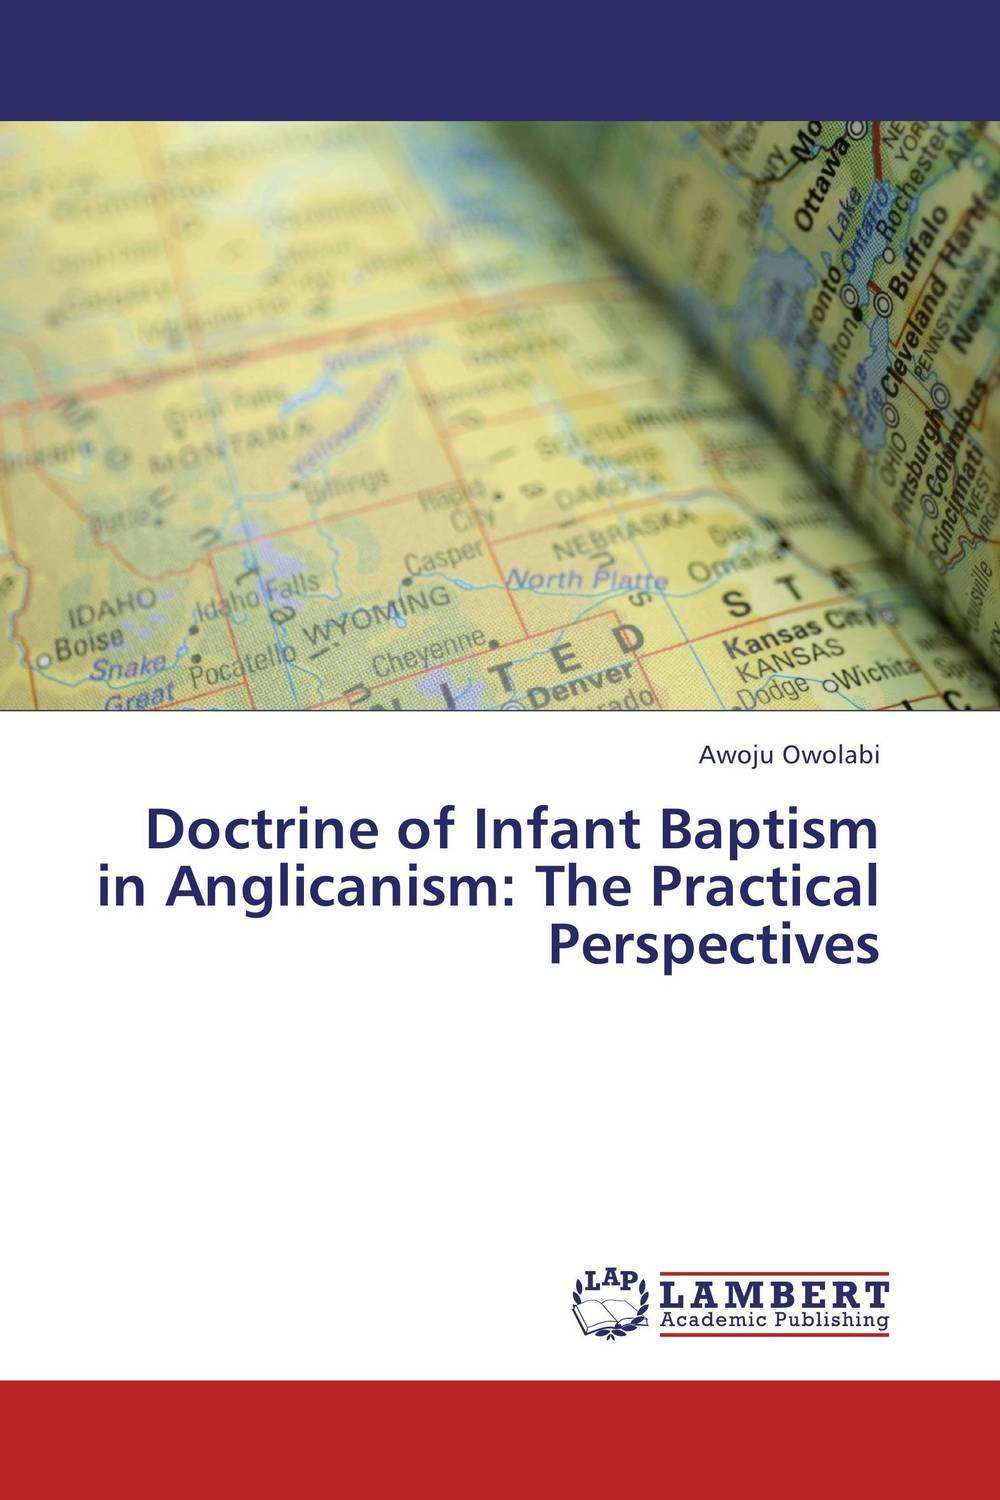 Doctrine of Infant Baptism in Anglicanism: The Practical Perspectives